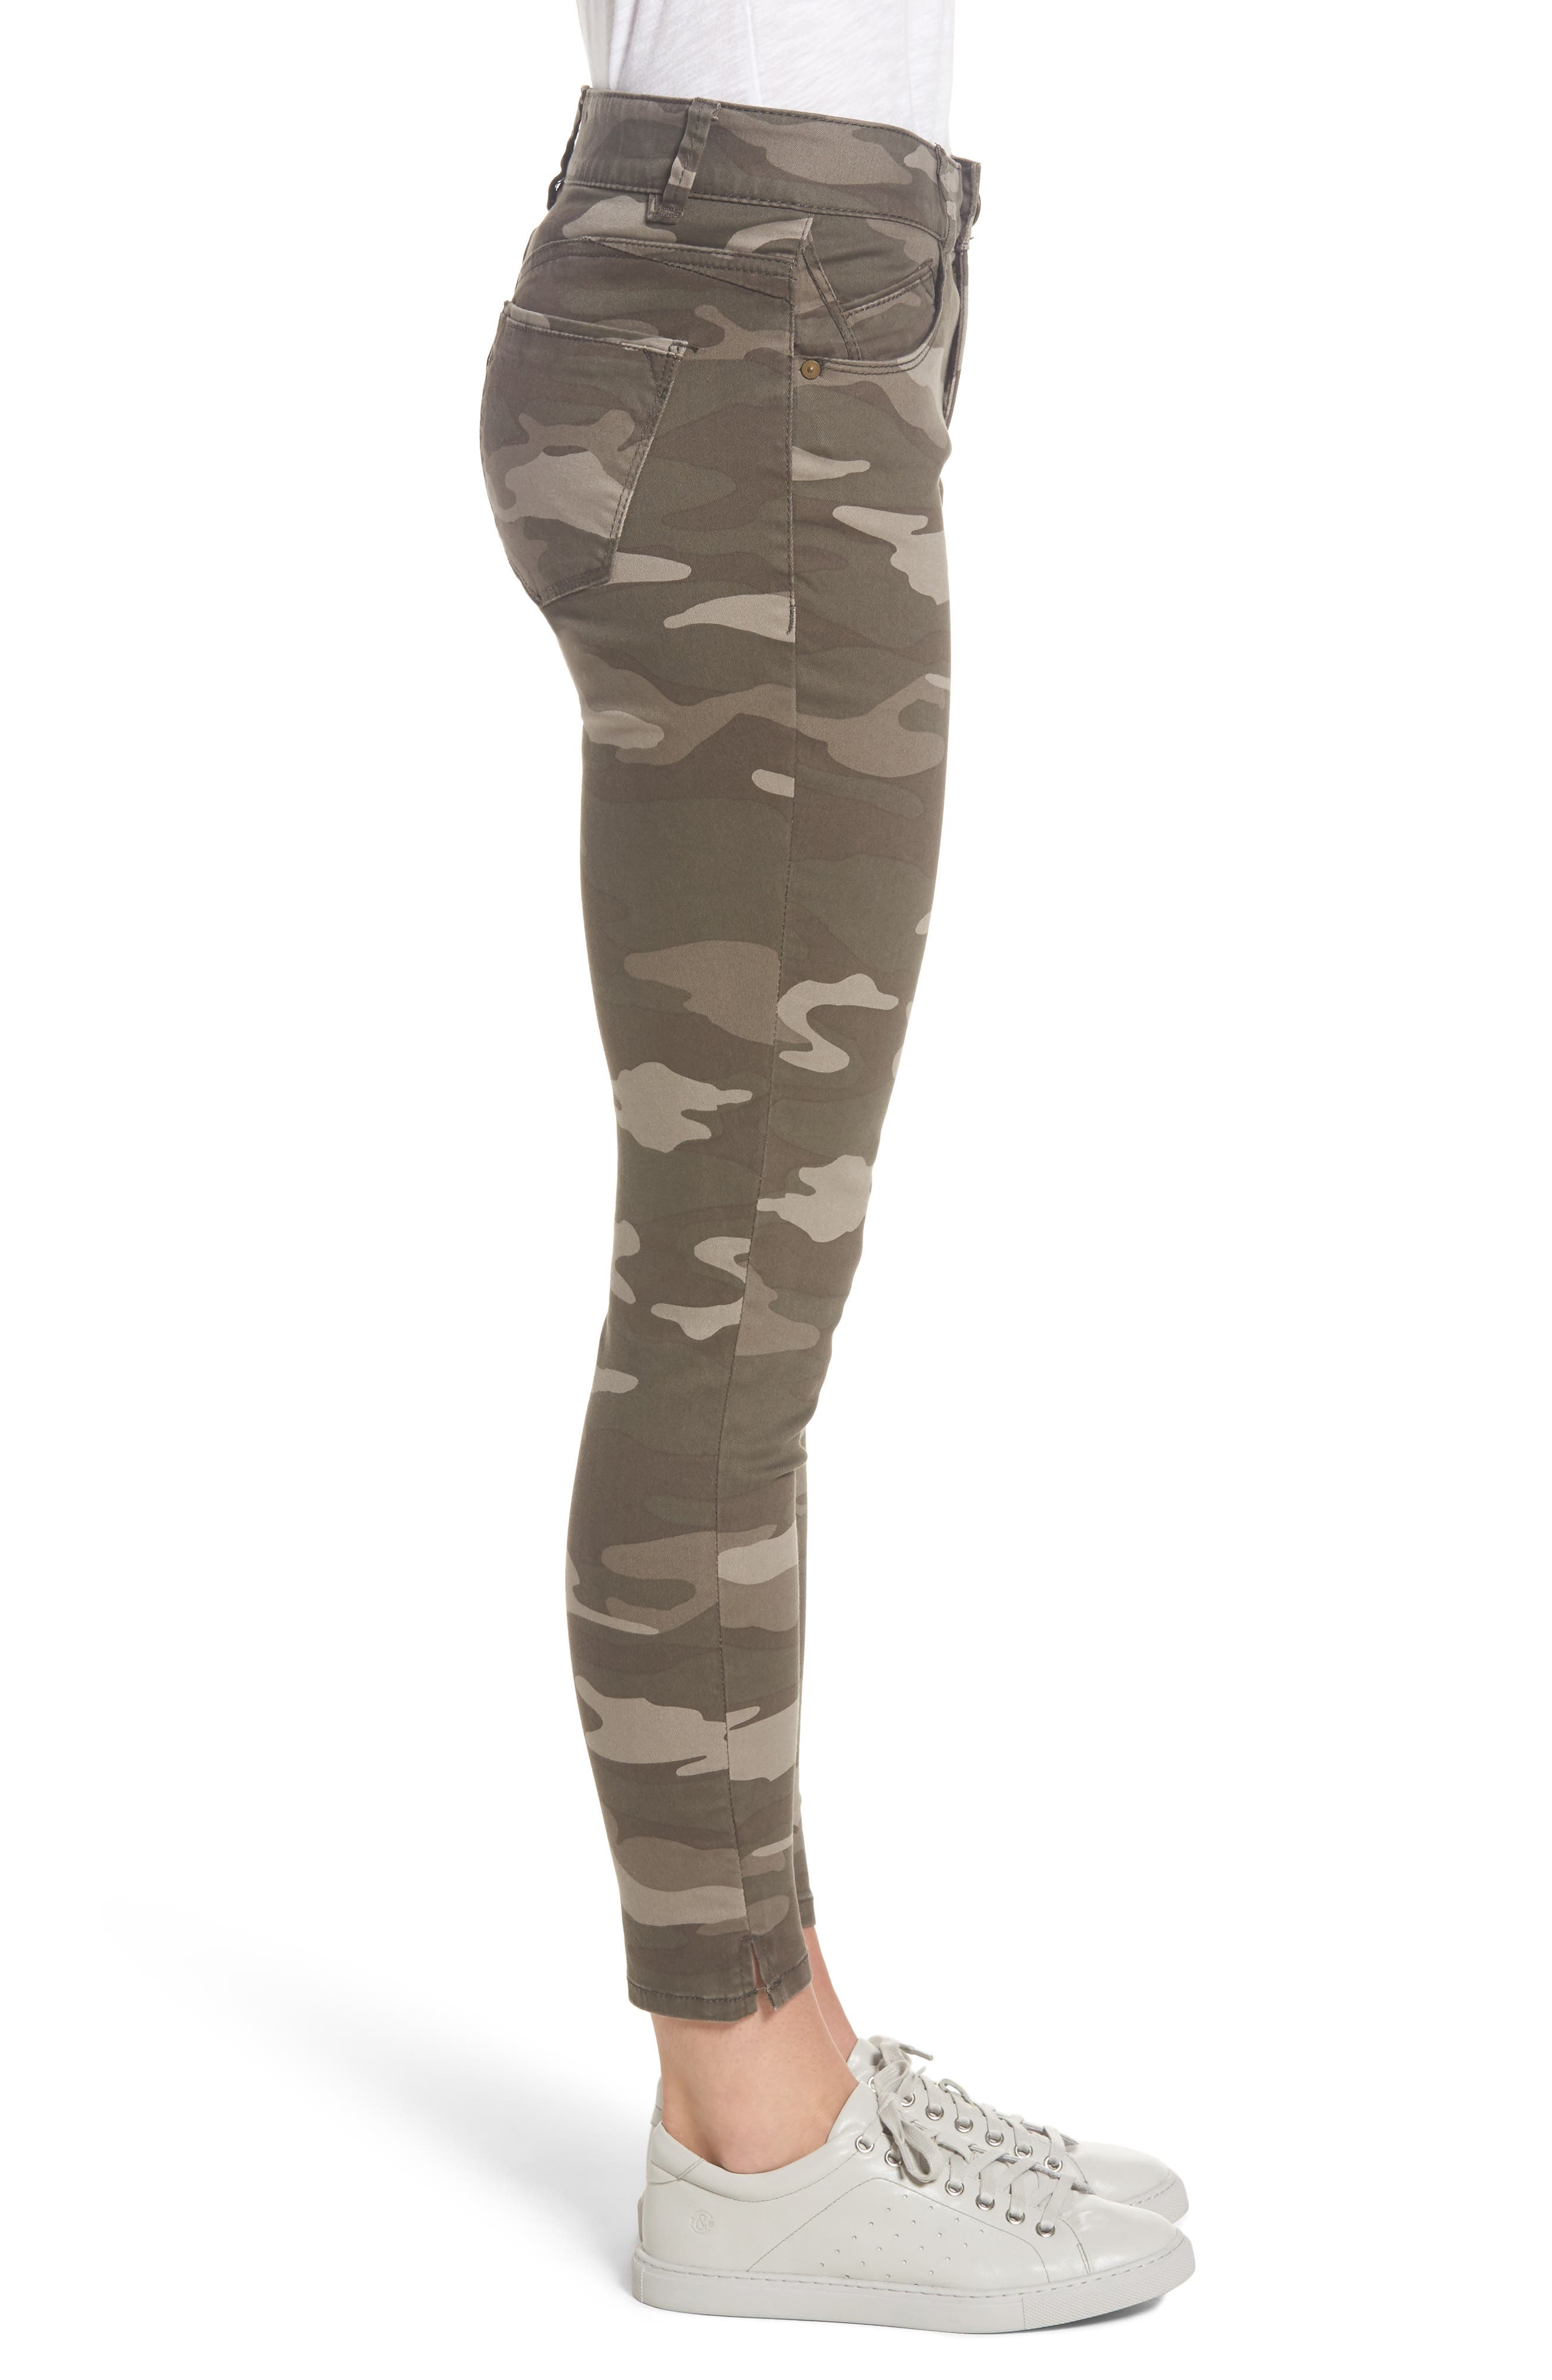 Ab-solution Camo Stretch Ankle Skinny Jeans,                             Alternate thumbnail 3, color,                             201